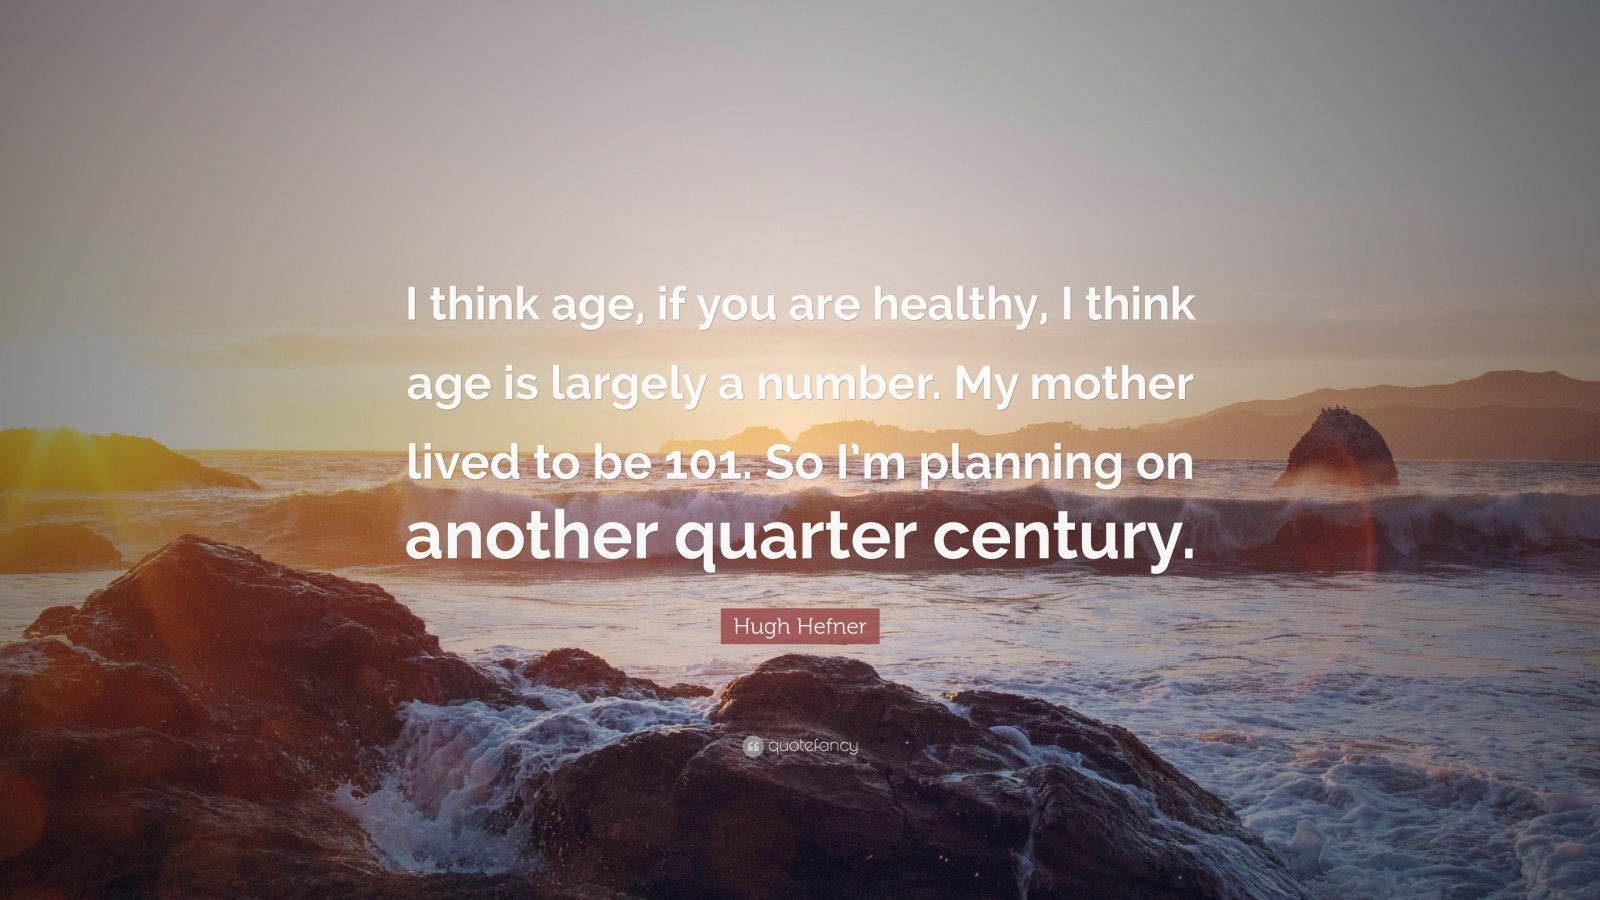 """Hugh Hefner Quote: """"I think age, if you are healthy, I think age is largely a number. My mother lived to be 101. So I'm planning on another quarter century."""""""